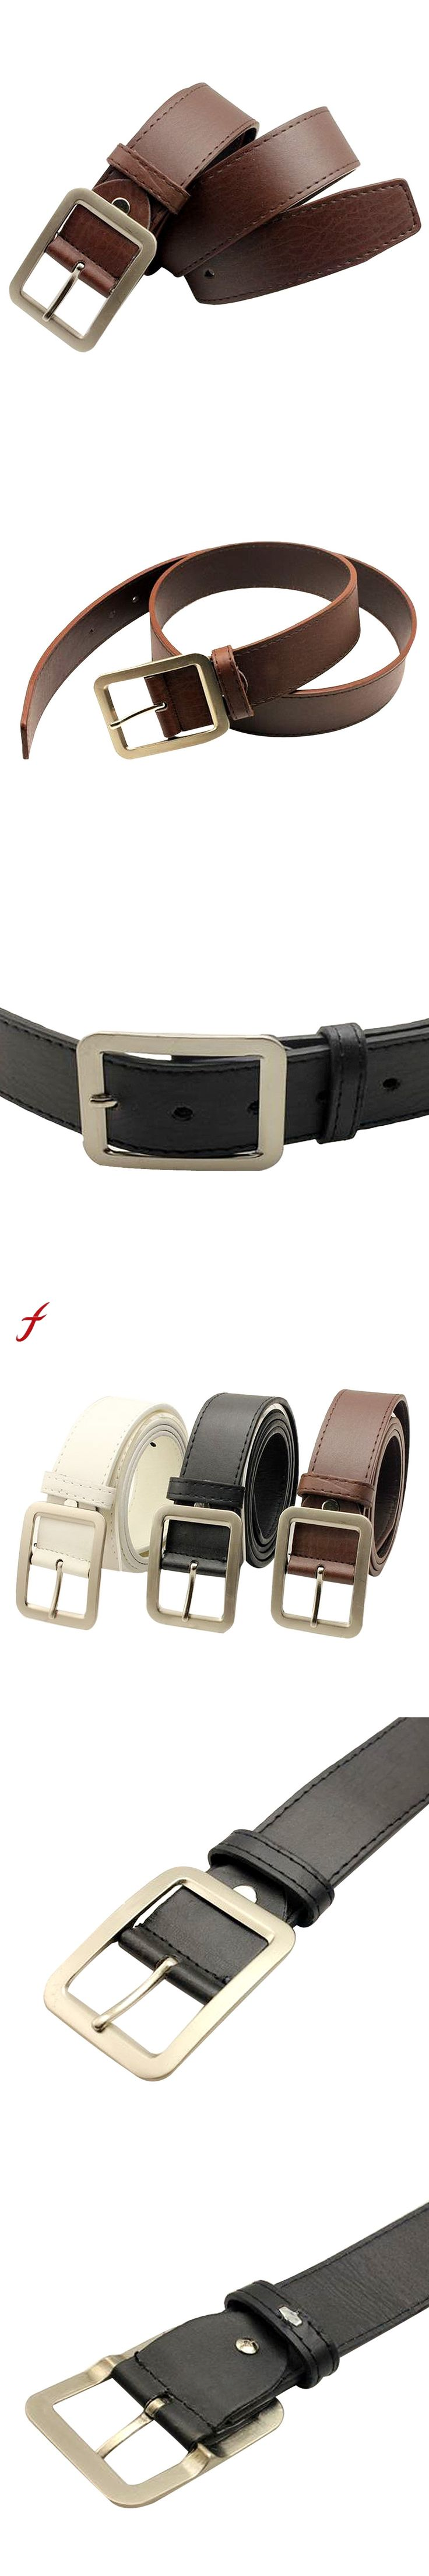 Simple Types Fashion Pin Buckle Mens' Womens' Wide Belt Classic Adult designer belts men women high quality belts for women 2017